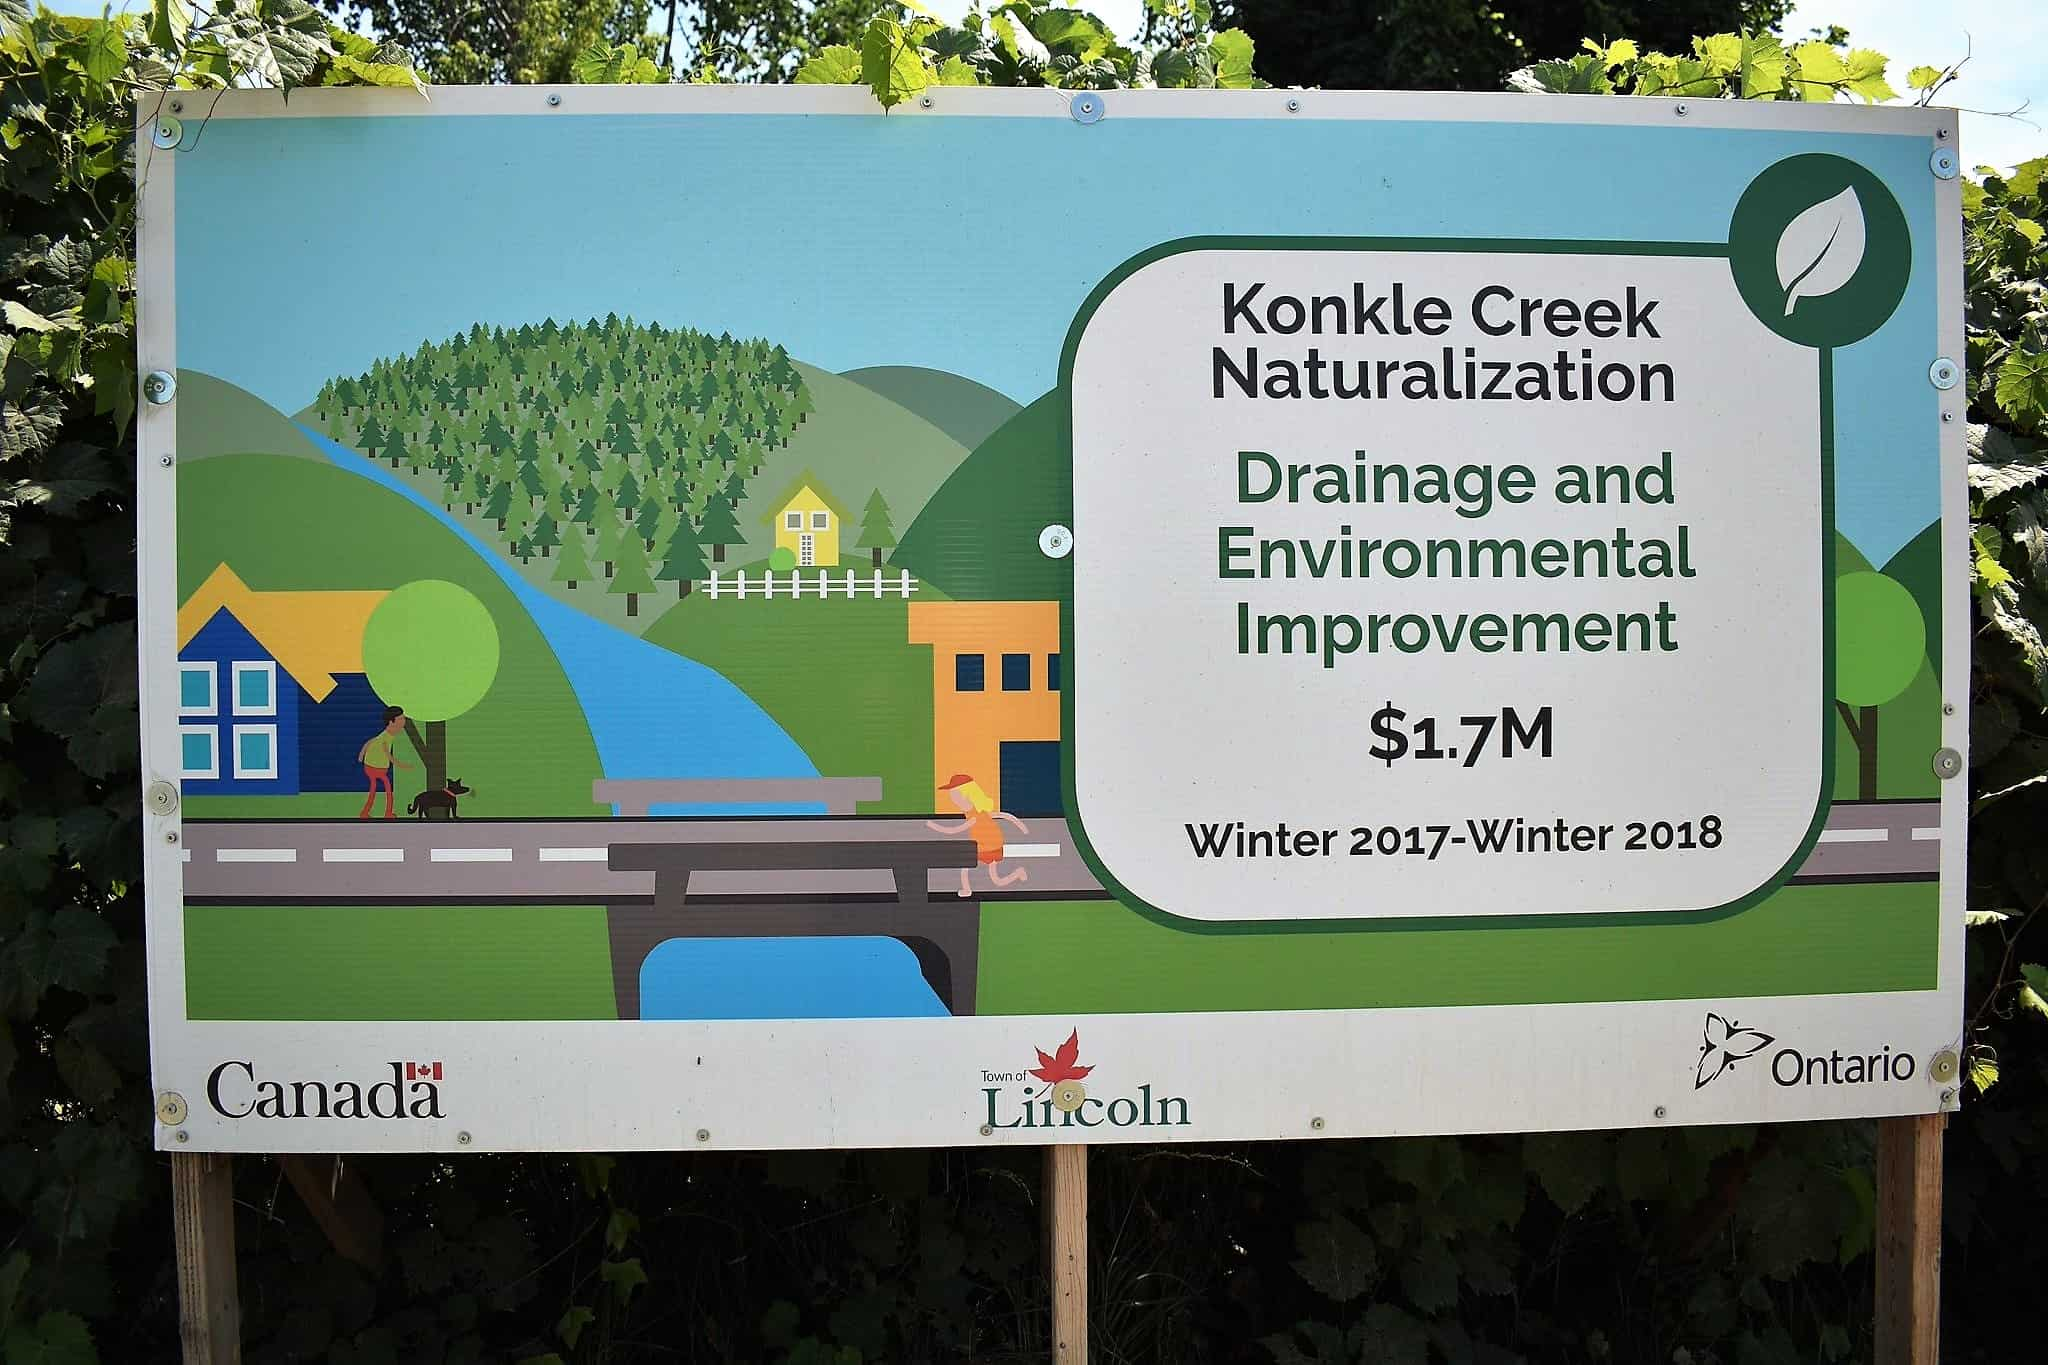 The Konkle Creek Naturalization Project has been going on for 10 years and is now complete.